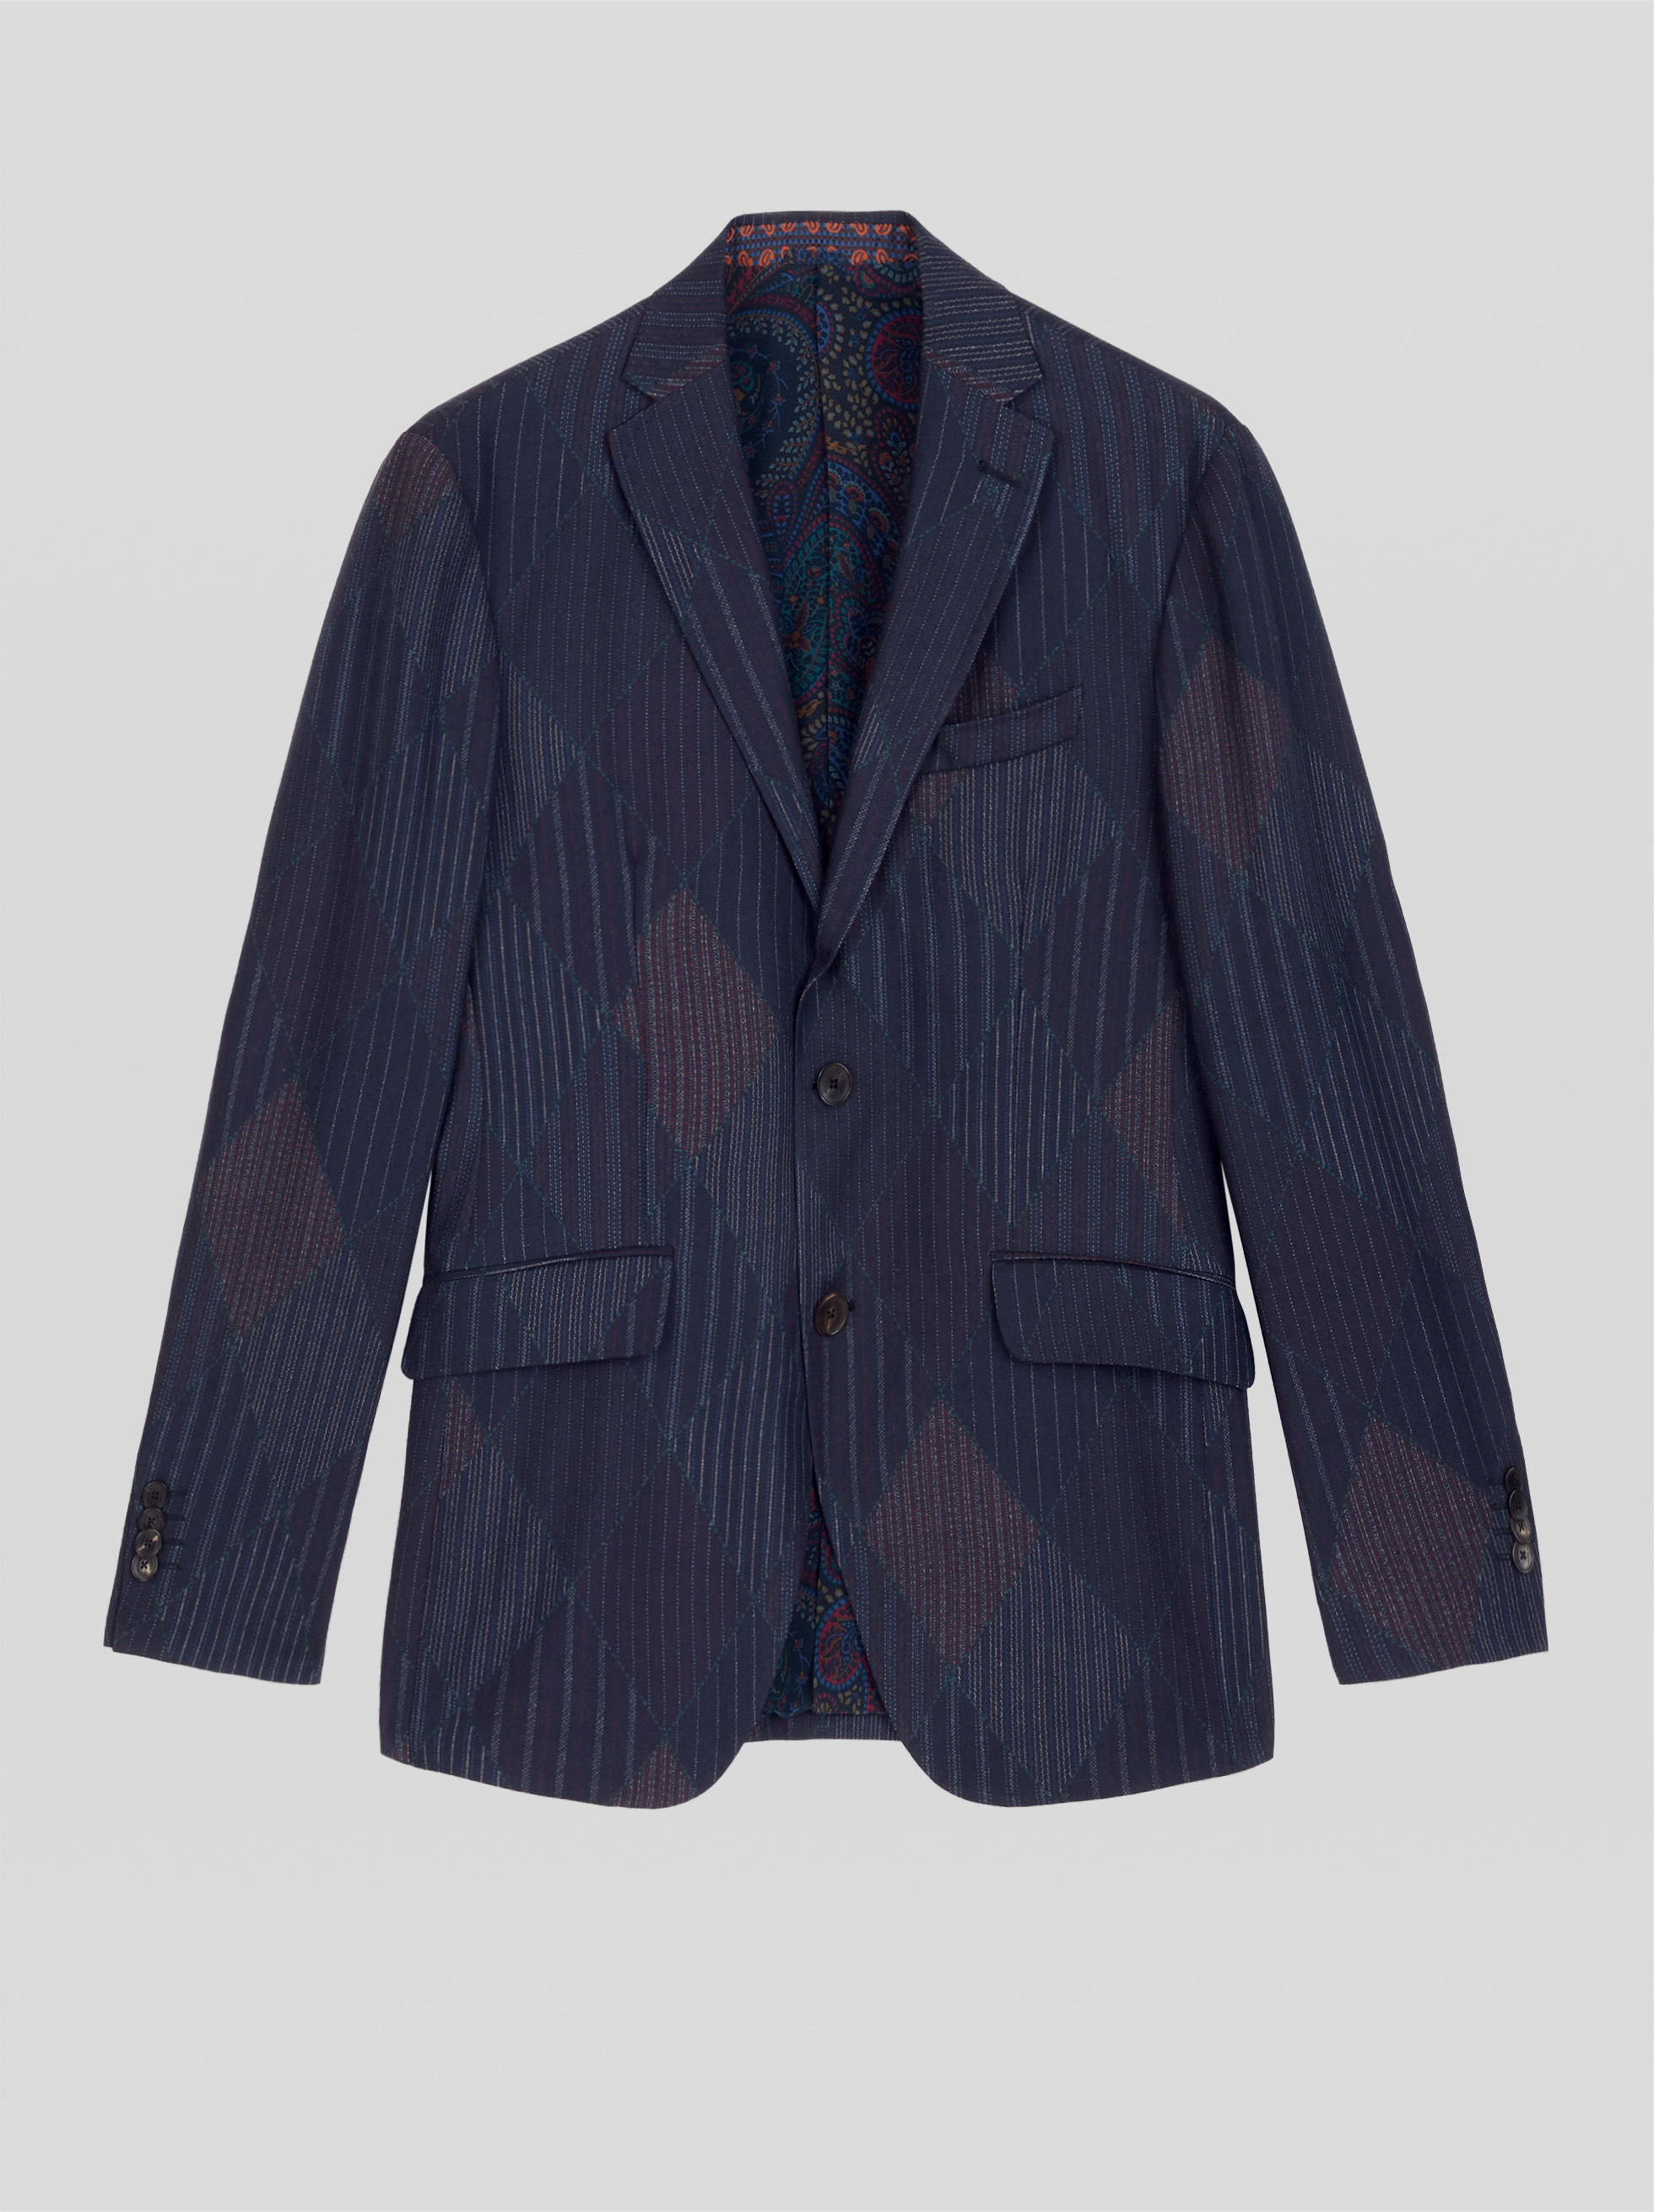 TAILORED STRIPED PATCHWORK JACKET